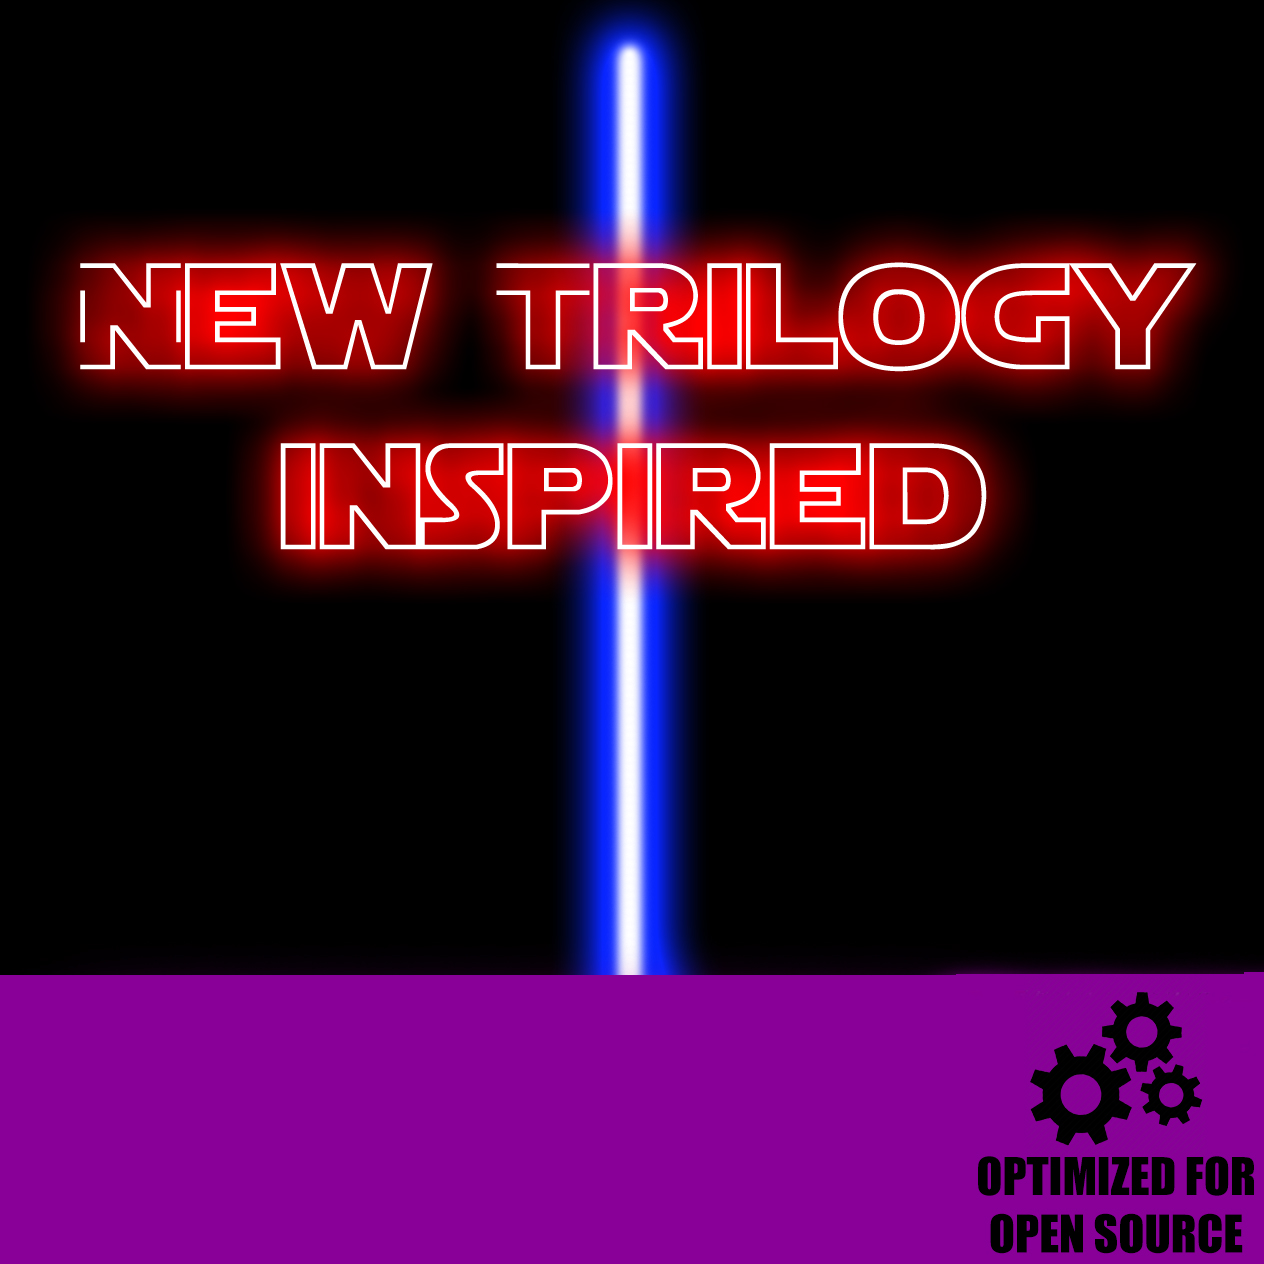 New Trilogy Inspired for Open Source